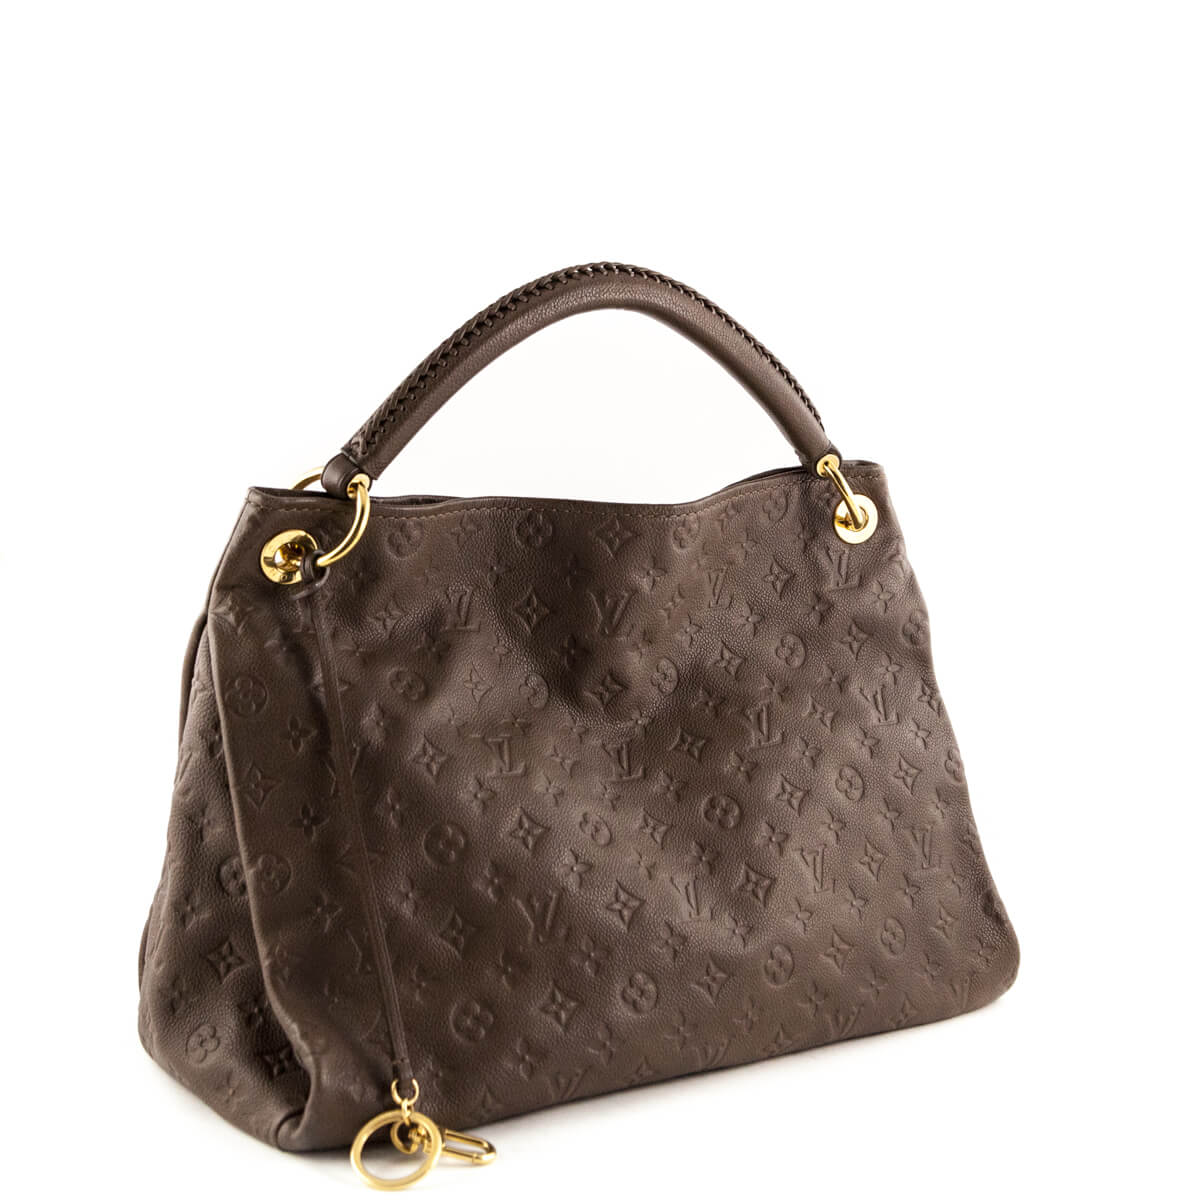 7ab208bfdb6 ... Louis Vuitton Terre Monogram Empreinte Artsy MM - LOVE that BAG -  Preowned Authentic Designer Handbags ...